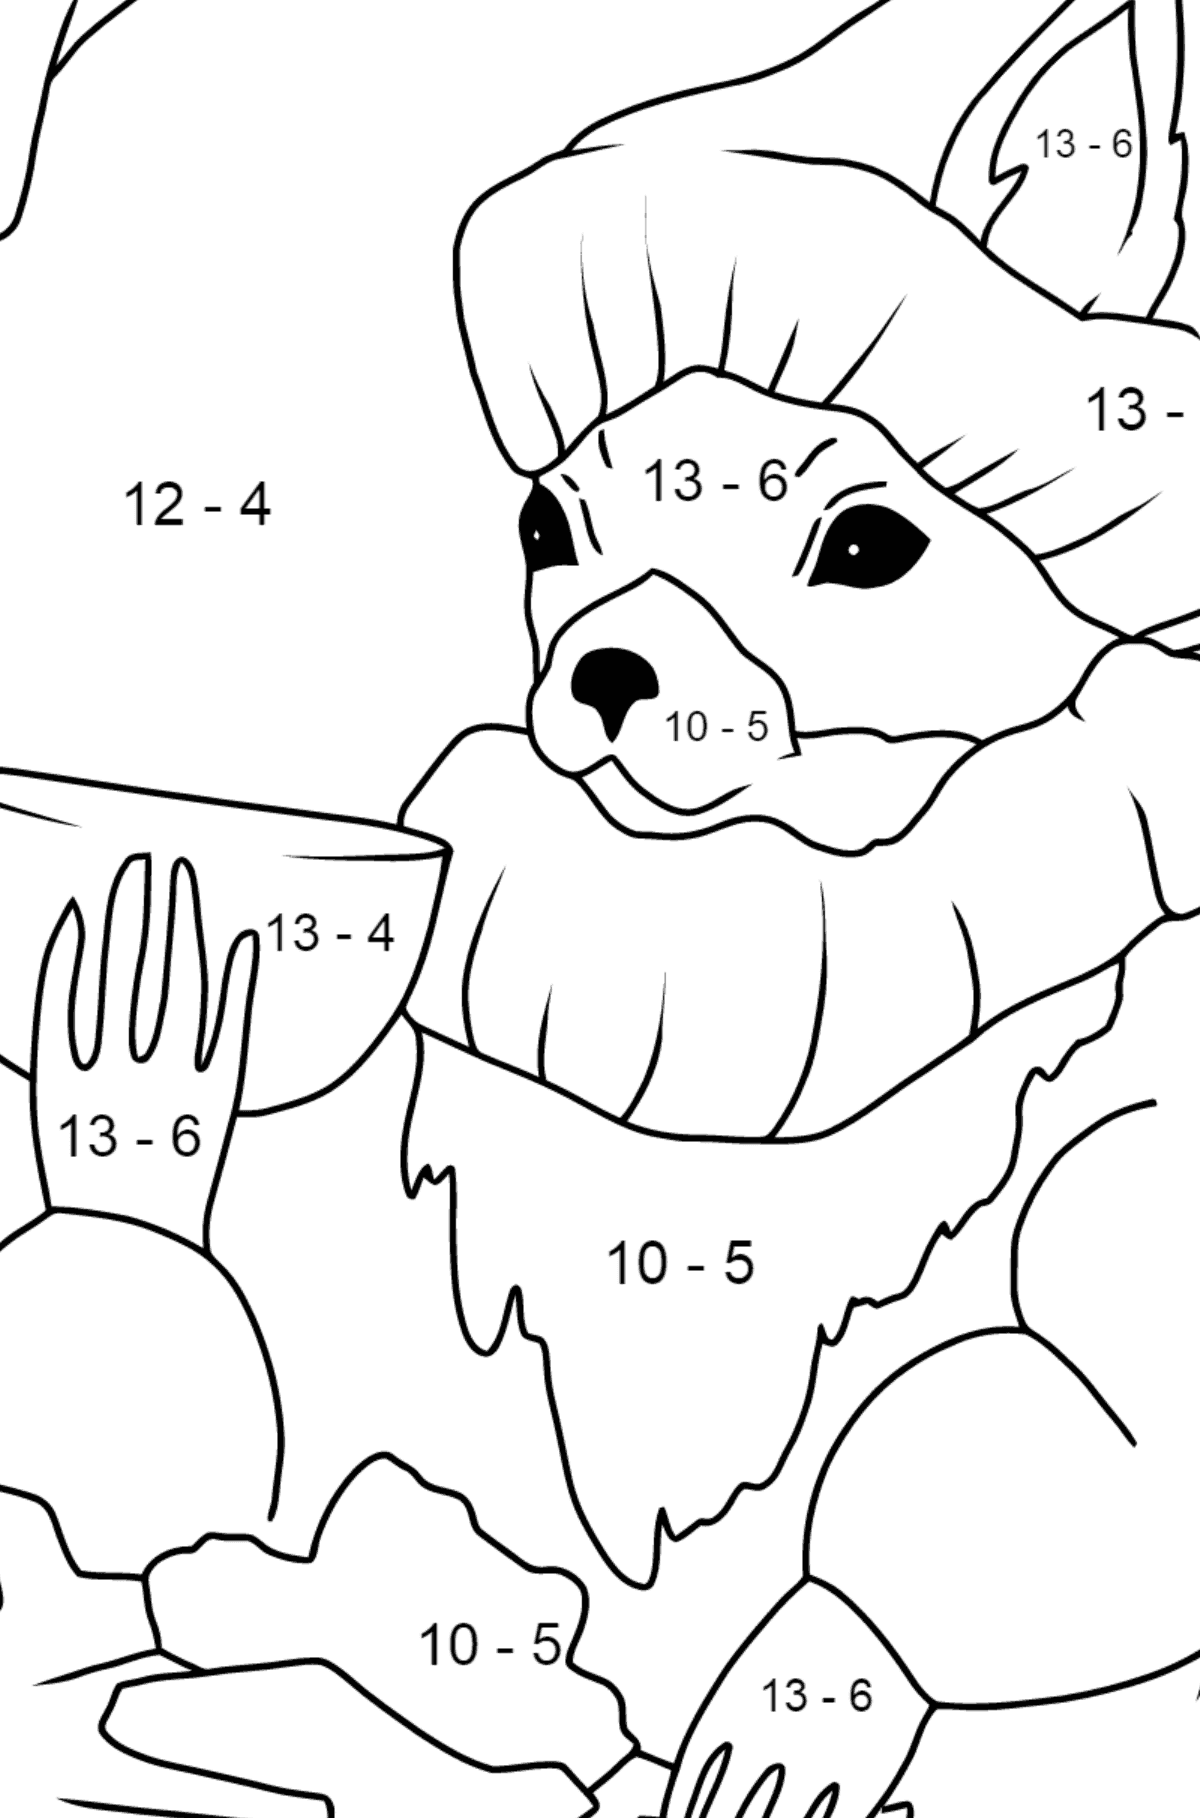 Winter Coloring Page - A Squirrel in a Cozy Burrow is Drinking Tea for Children  - Color by Number Substraction